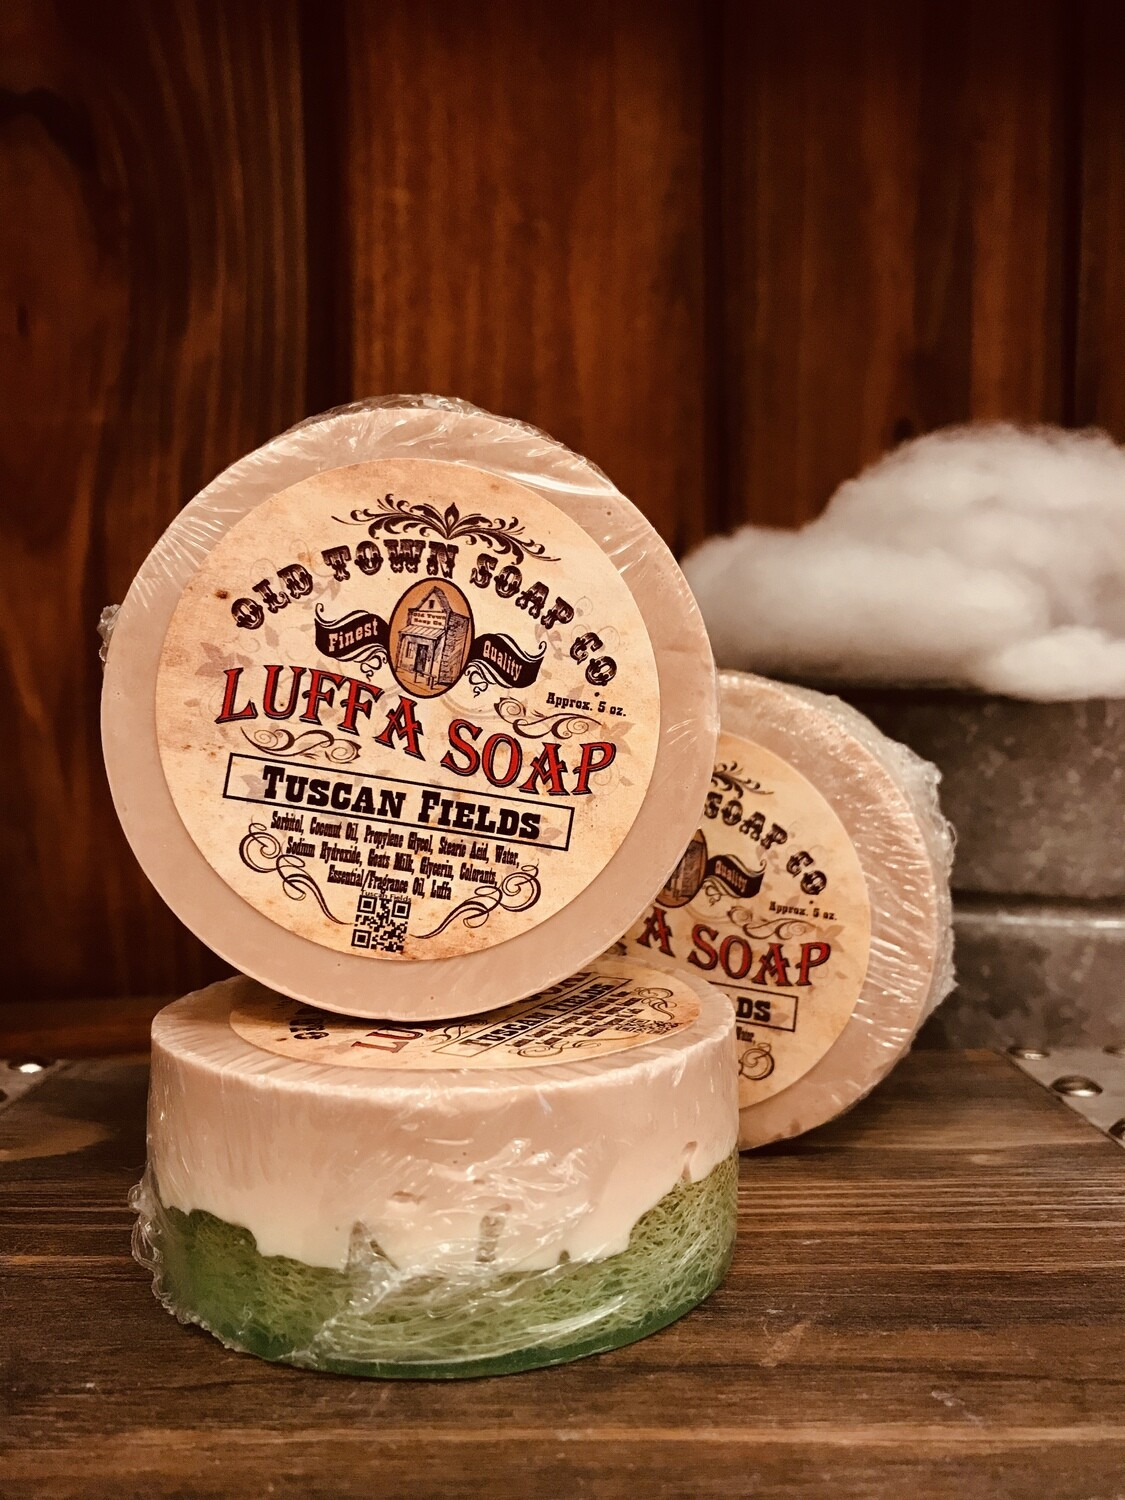 Tuscan Fields -Luffa Soap